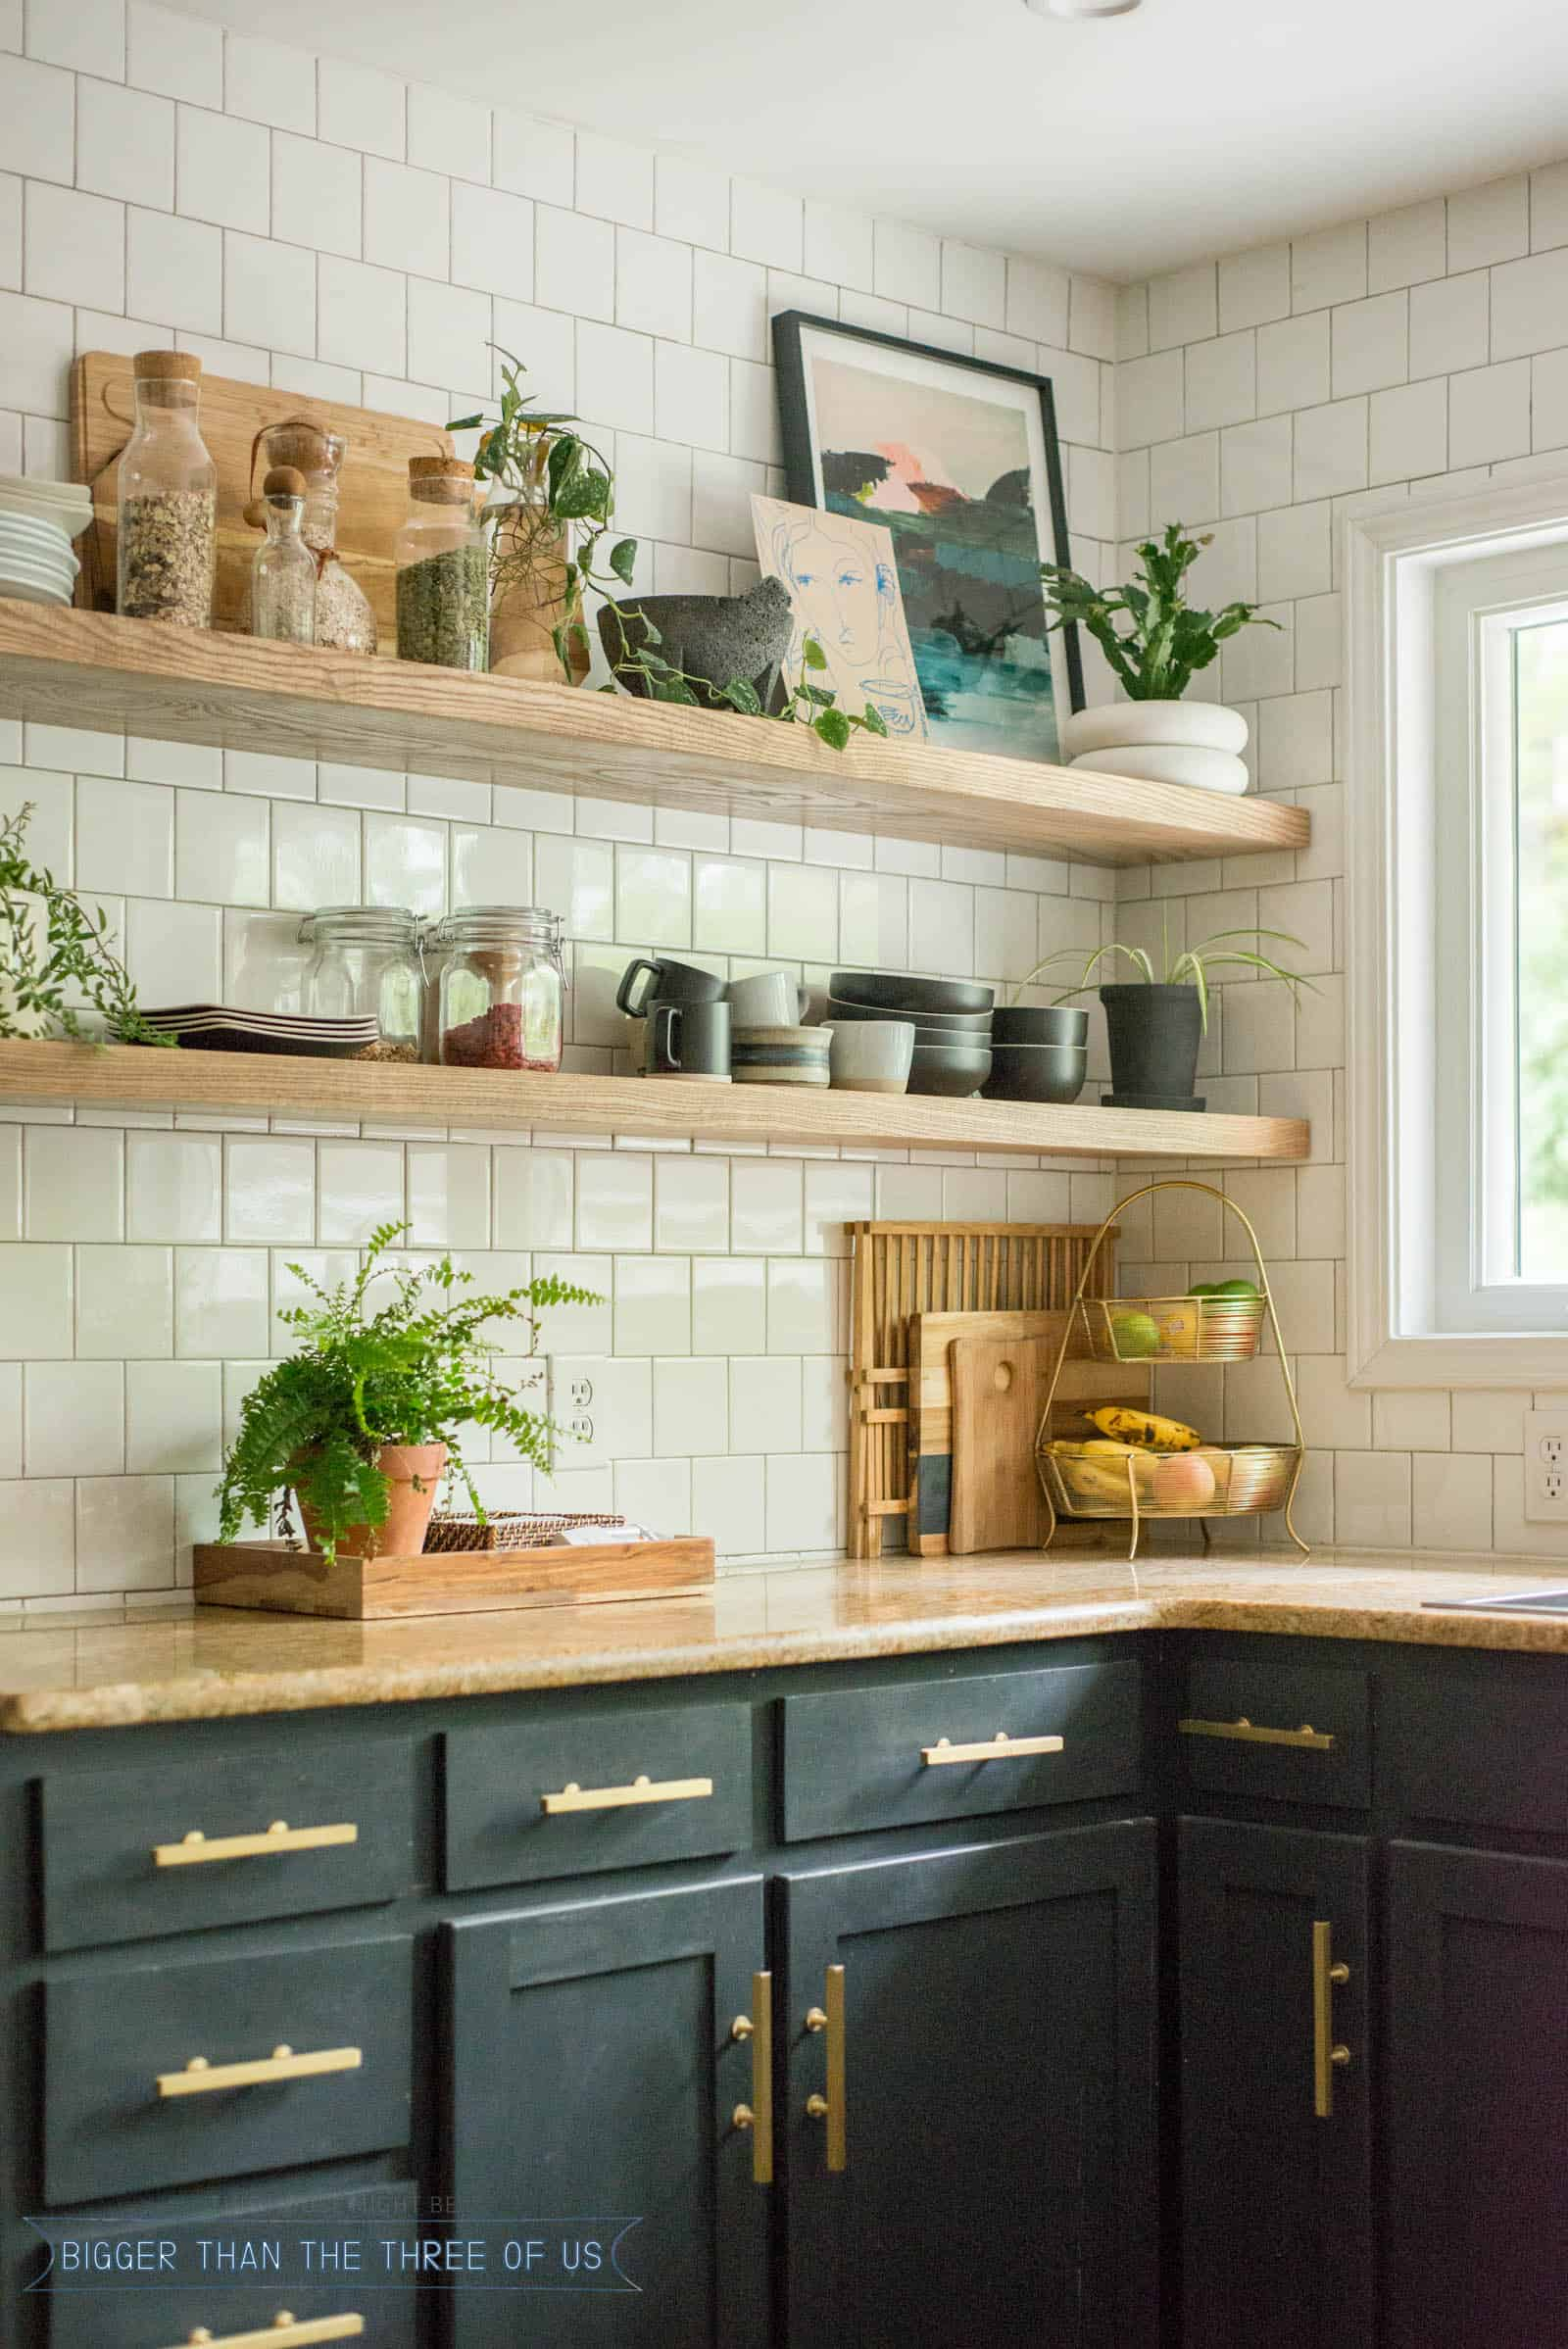 Kitchen Diy Diy Open Shelving Kitchen Guide Bigger Than The Three Of Us